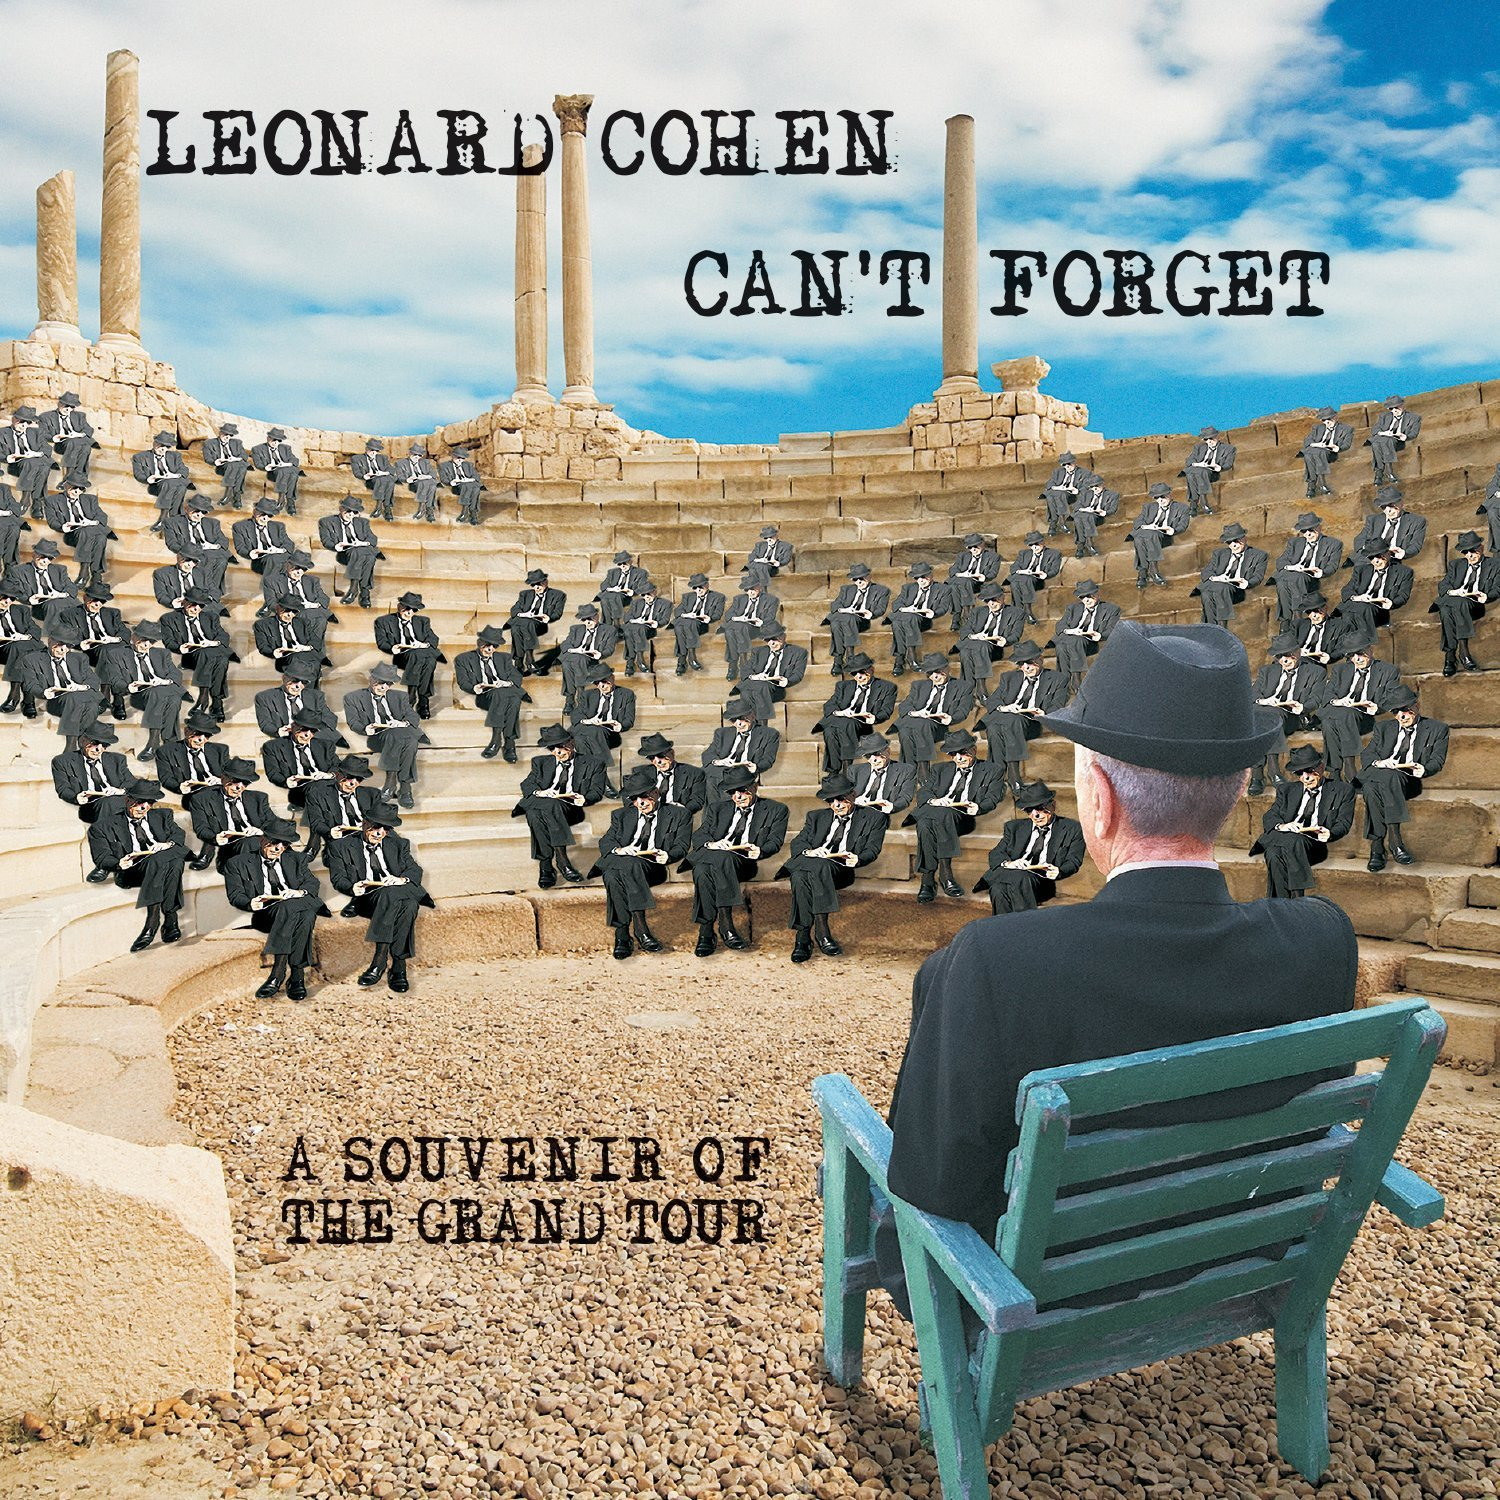 Can't Forget: A Souvenir of The Grand Tour Leonard Cohen Multi-Artistes Pop Rock